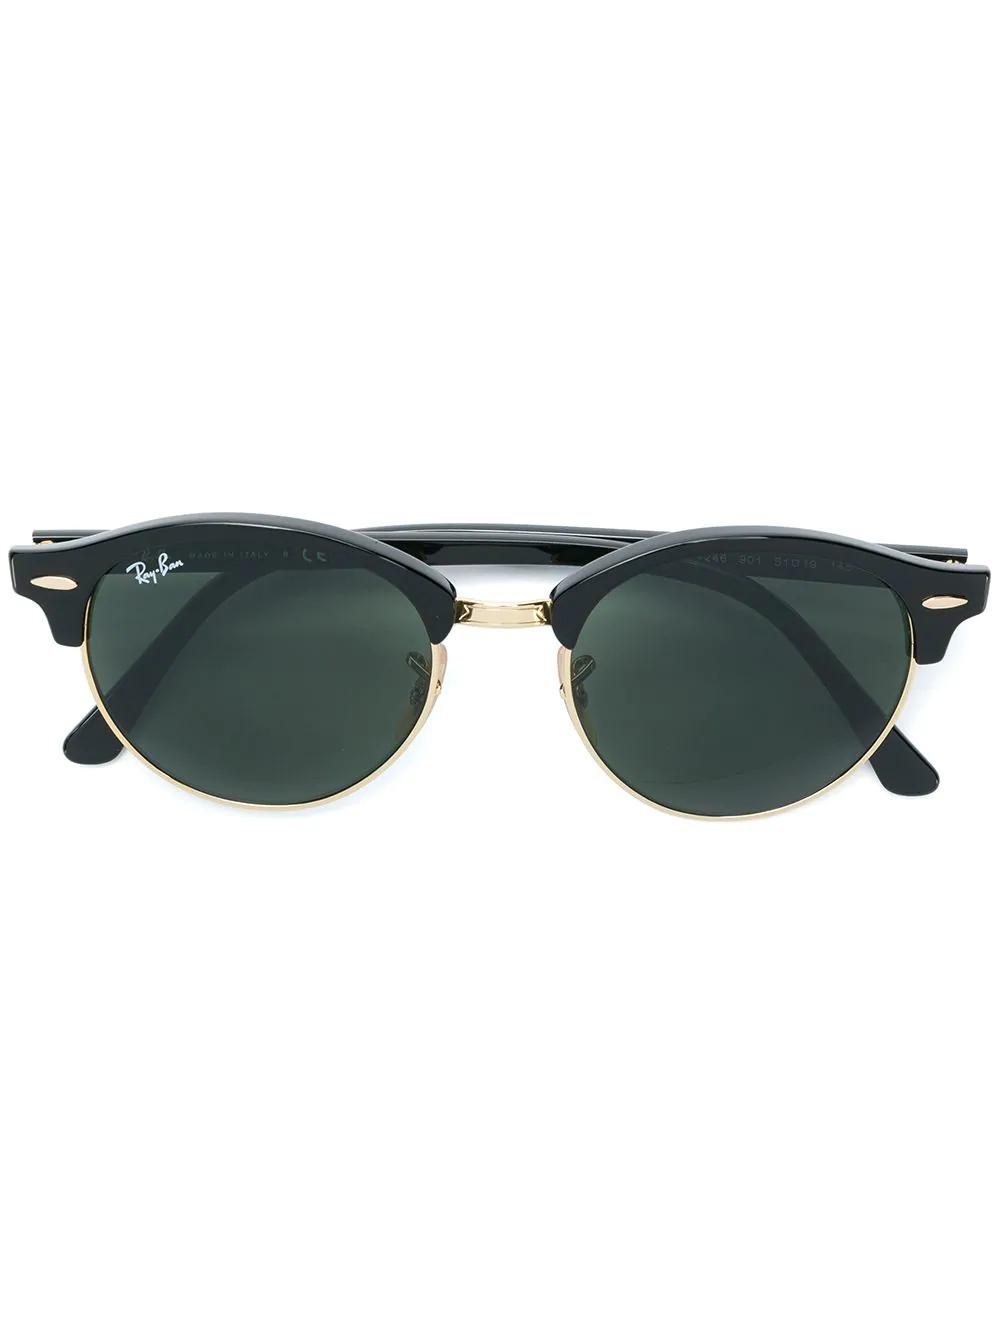 a77449dd4be6 Ray Ban Ray-Ban Clubround Sunglasses - Black | ModeSens